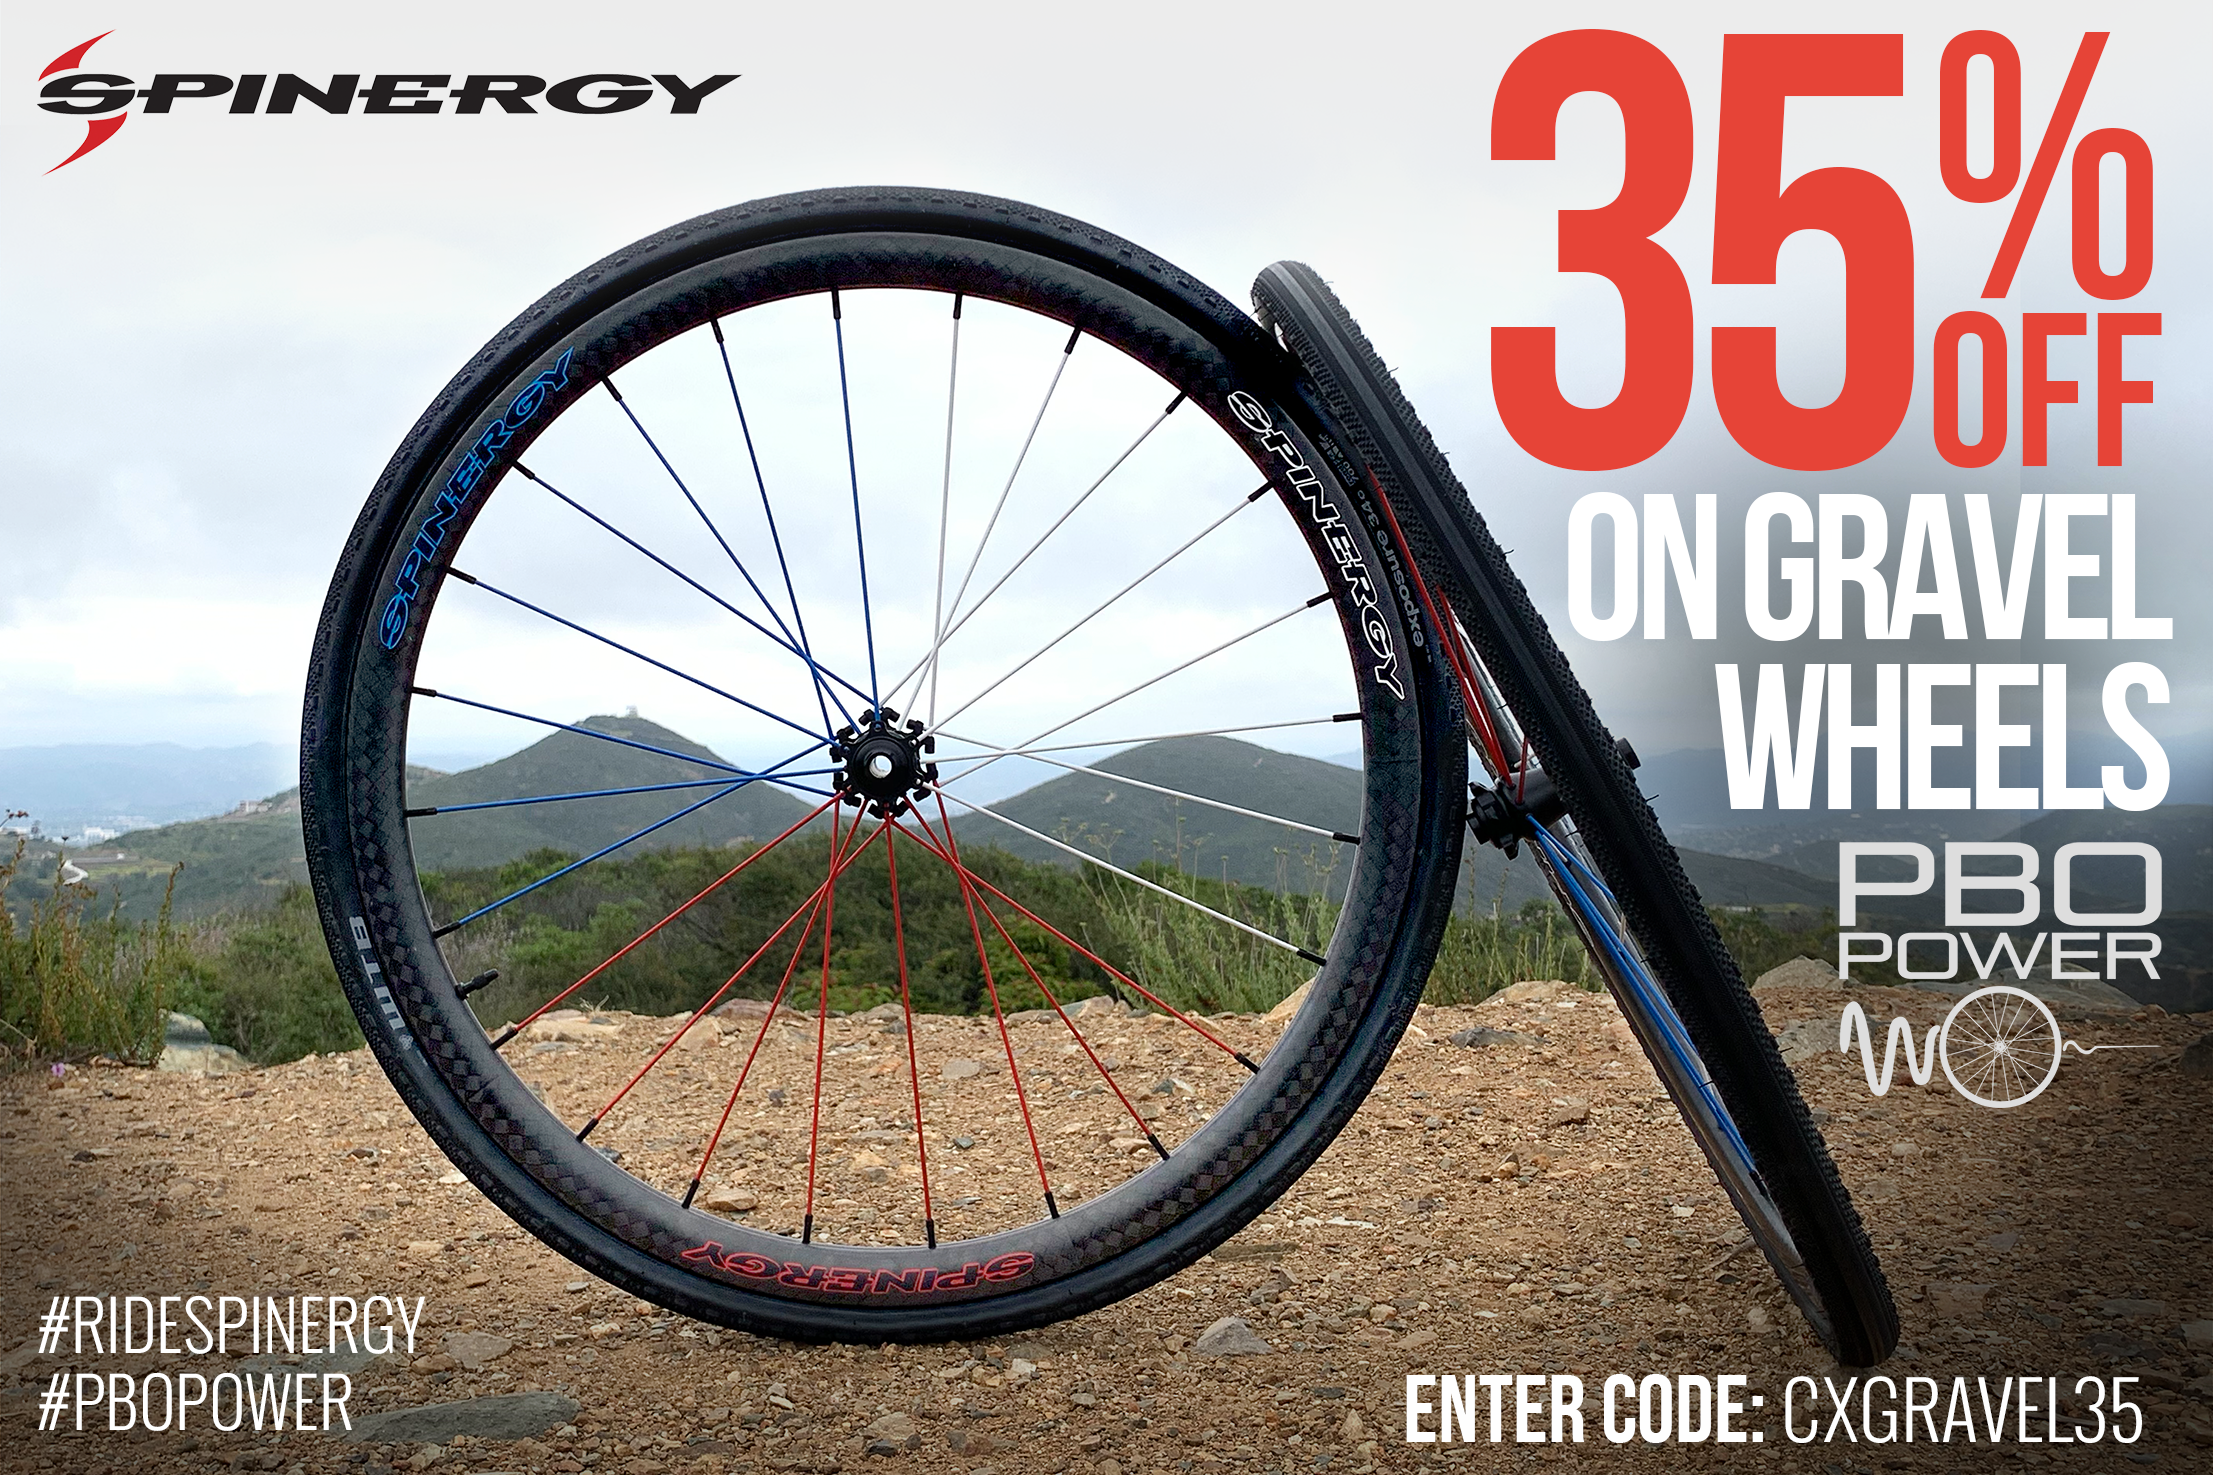 spinergy_35_Gravel (002).png